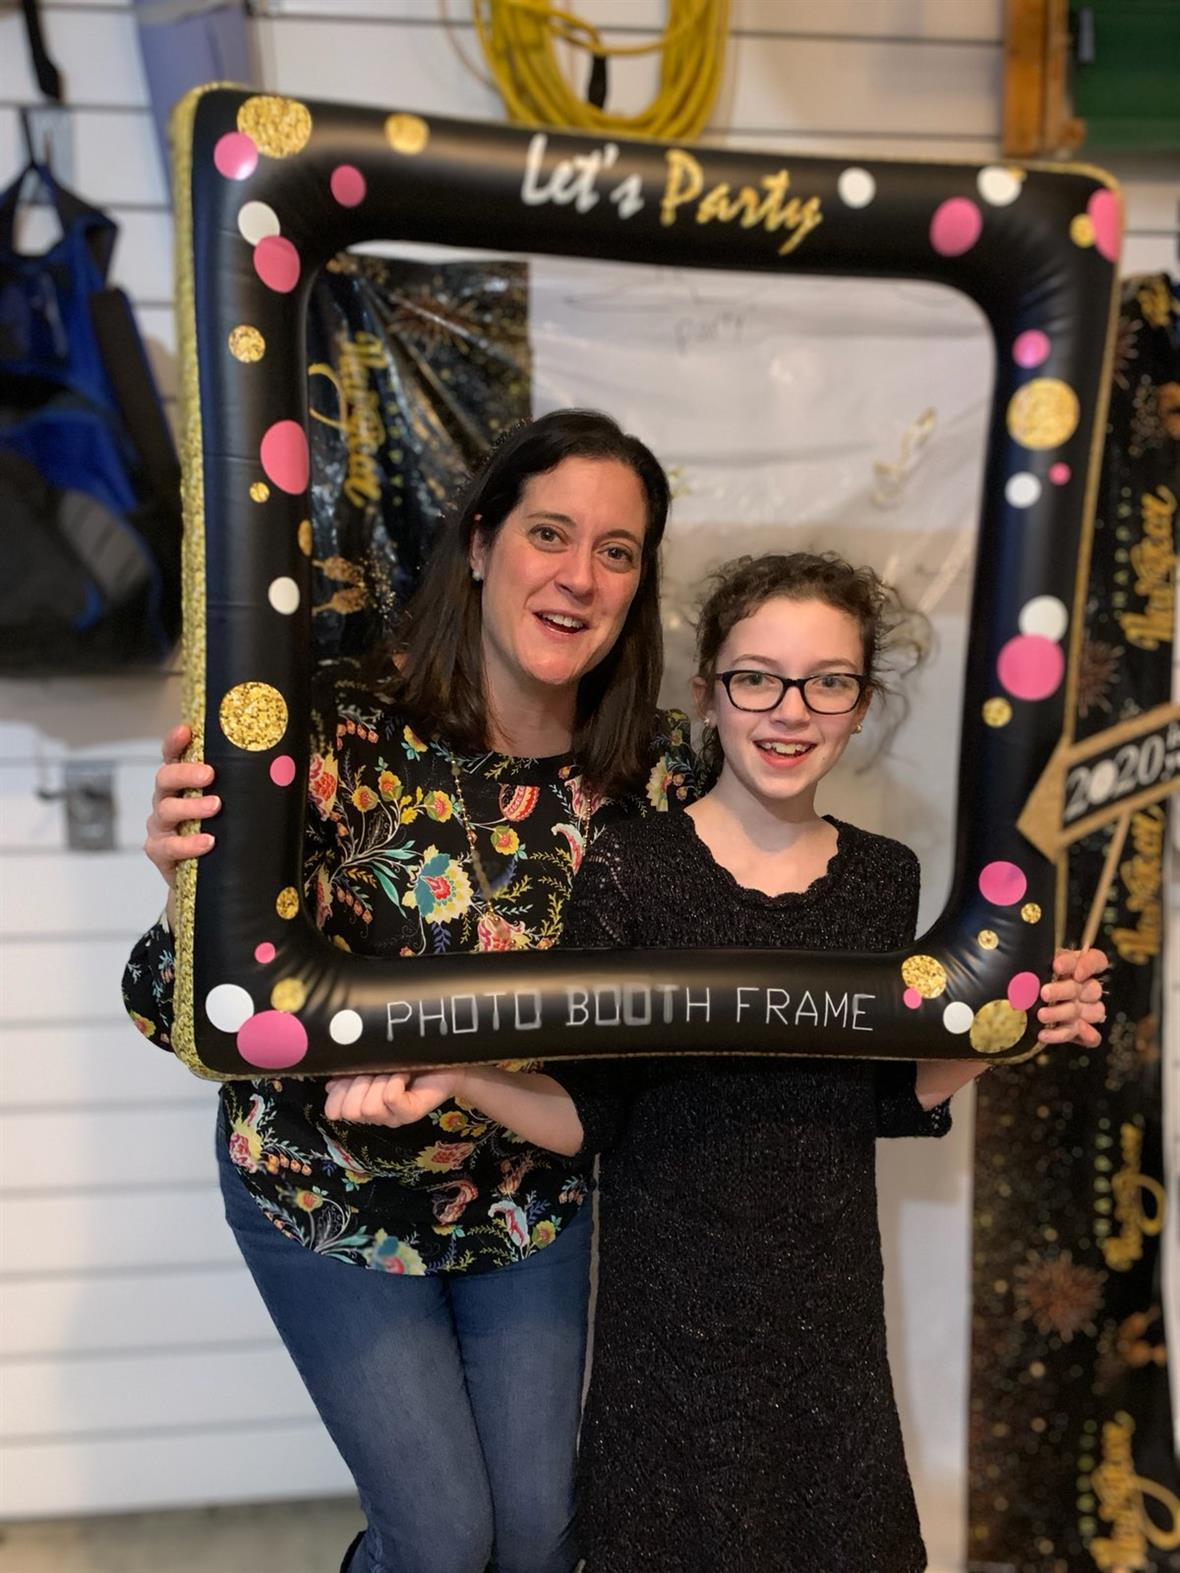 Kelly and Izzy Sherretz pose for a photo with an inflatable photo frame.